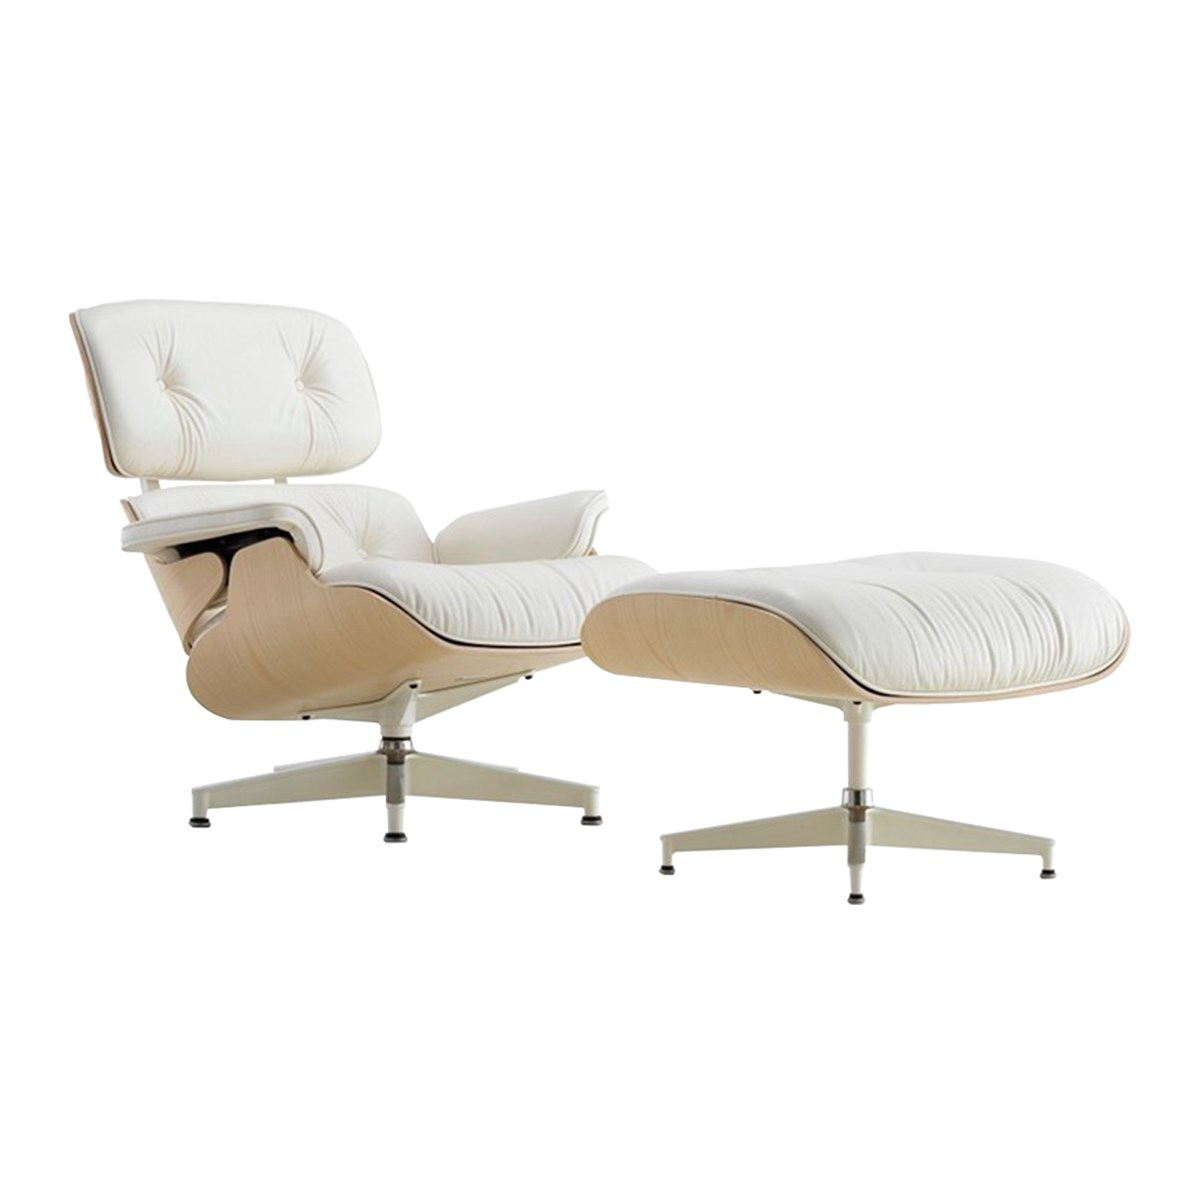 Herman-Miller-Charles-Ray-Eames-Eames®-Lounge-Chair-Ottoman-Matisse-1